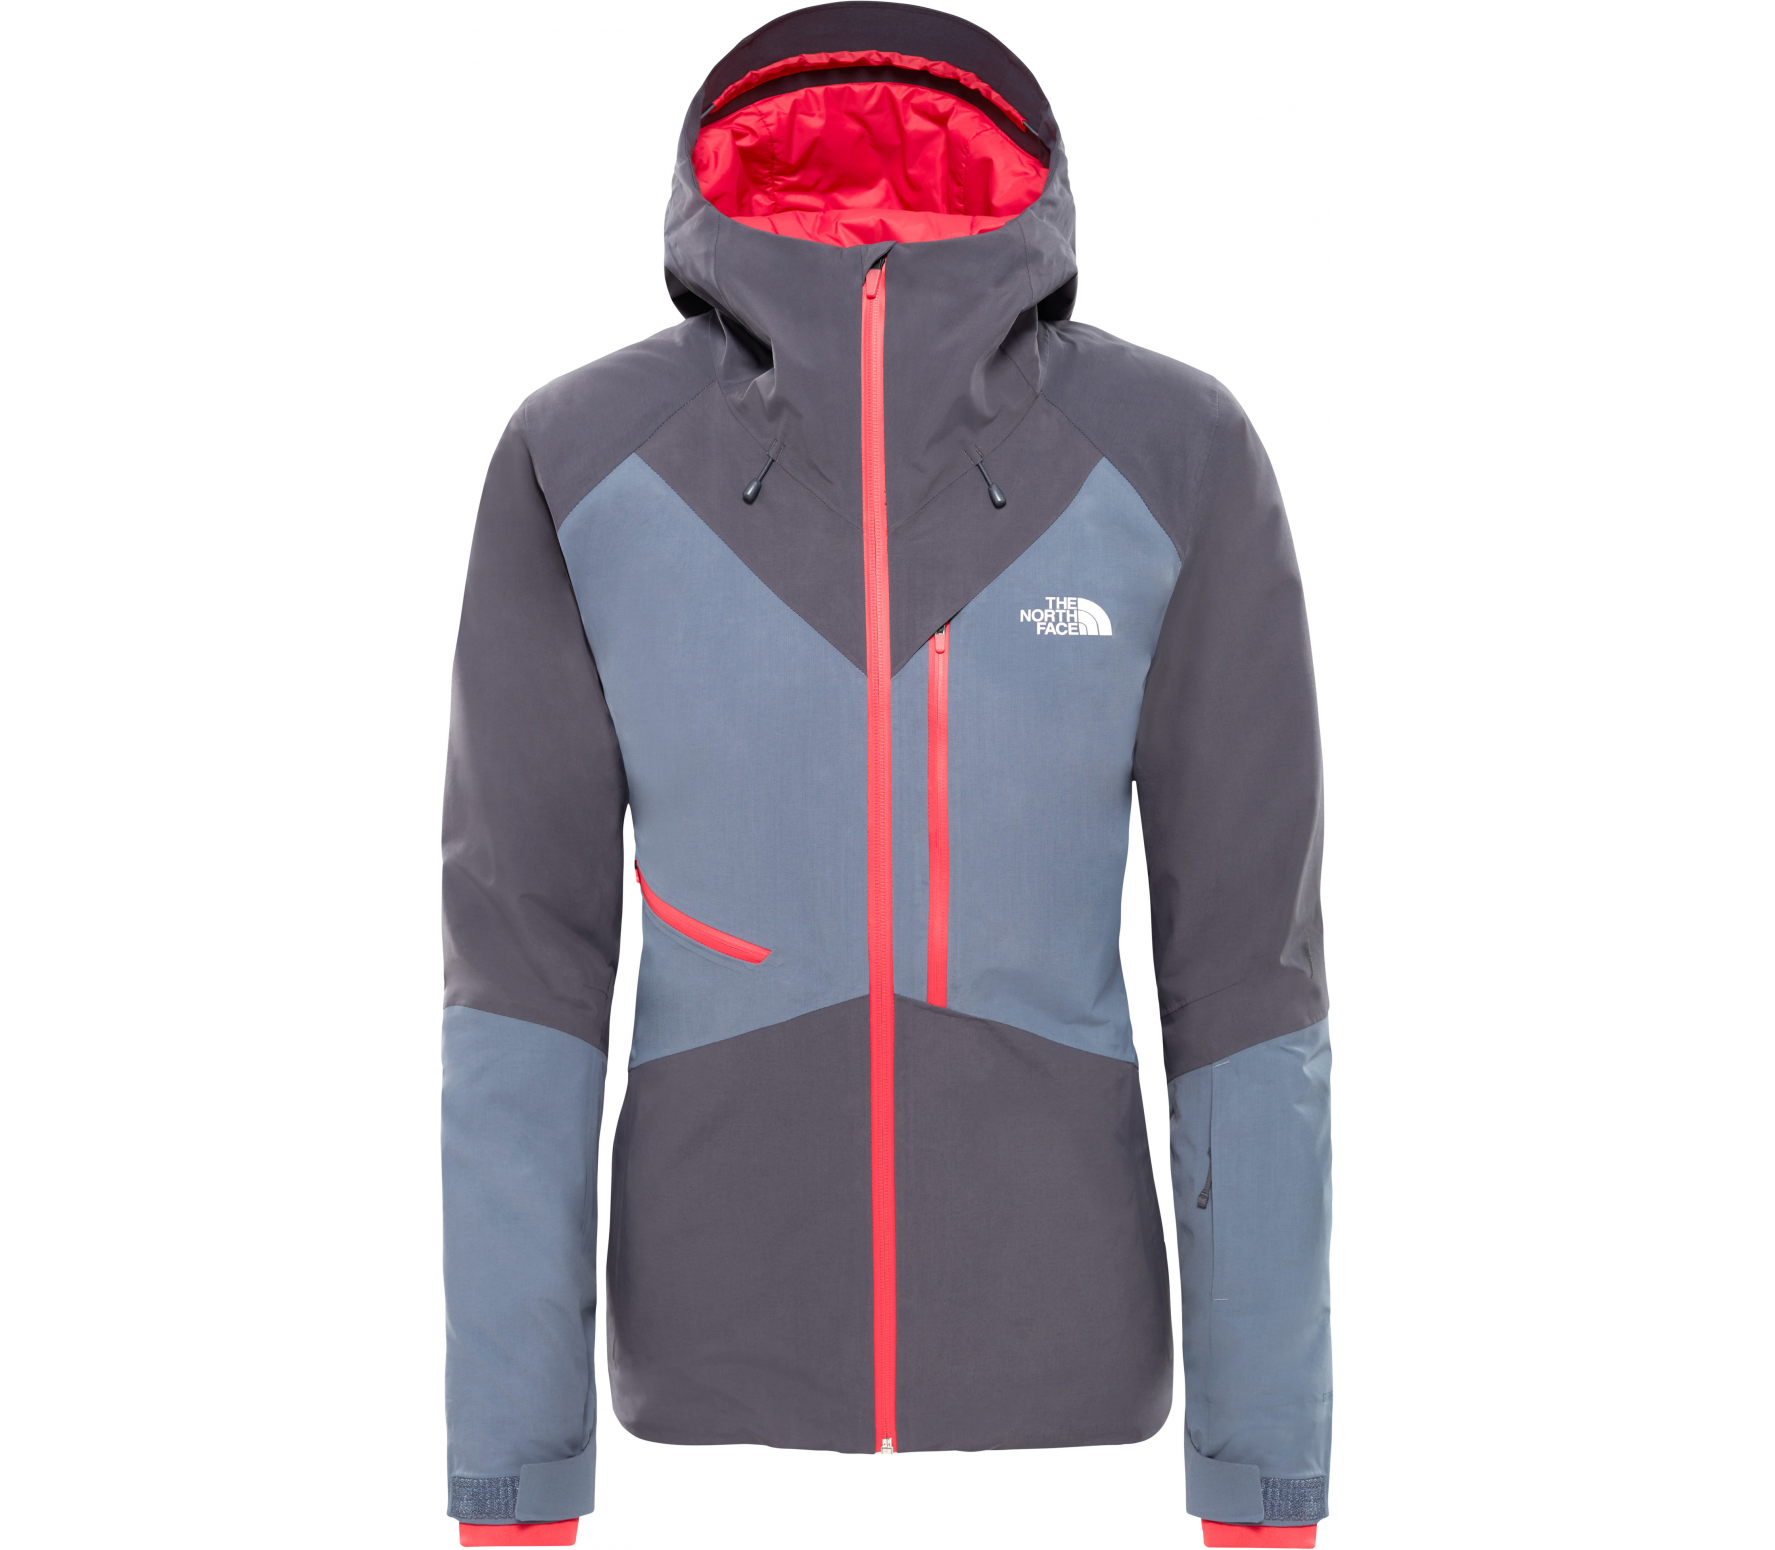 38fa47323c8e73 The North Face - Lostrail Damen Skijacke (grau) im Online Shop von ...